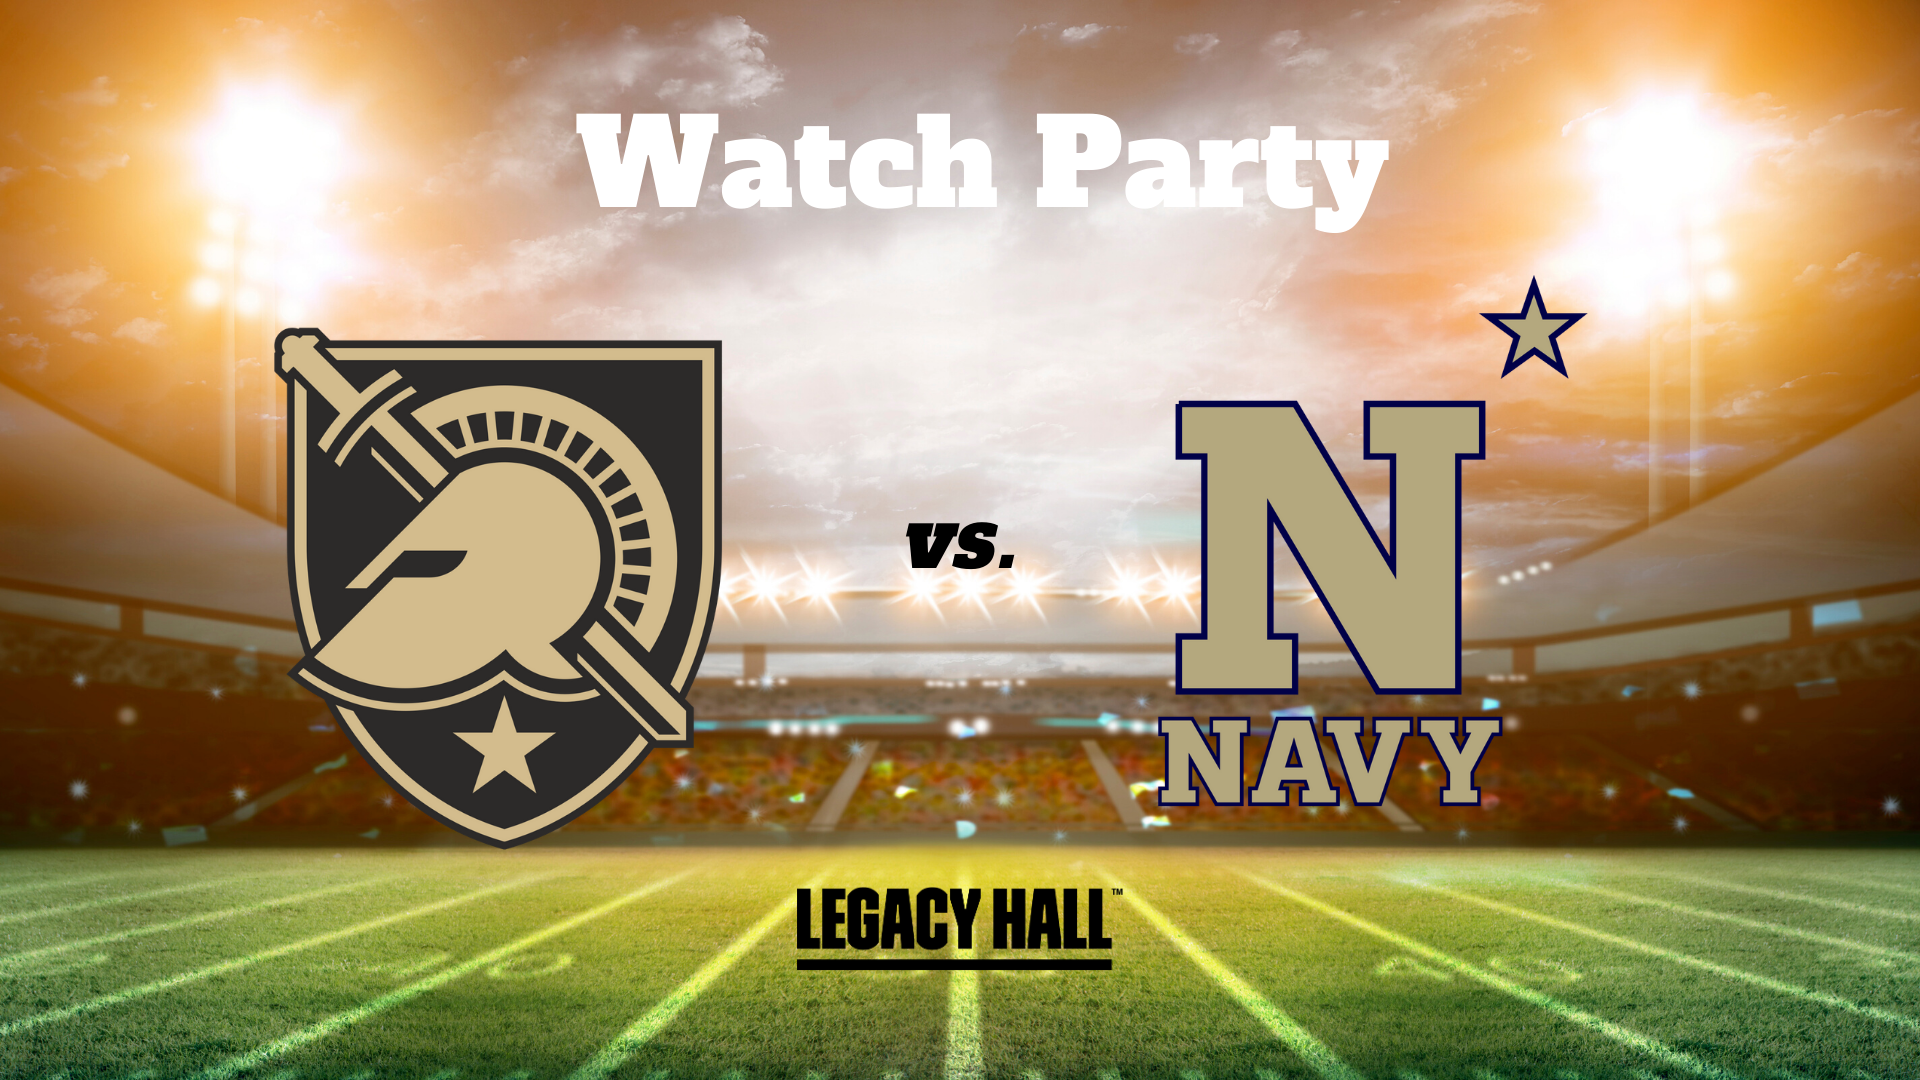 Army vs. Navy Watch Party